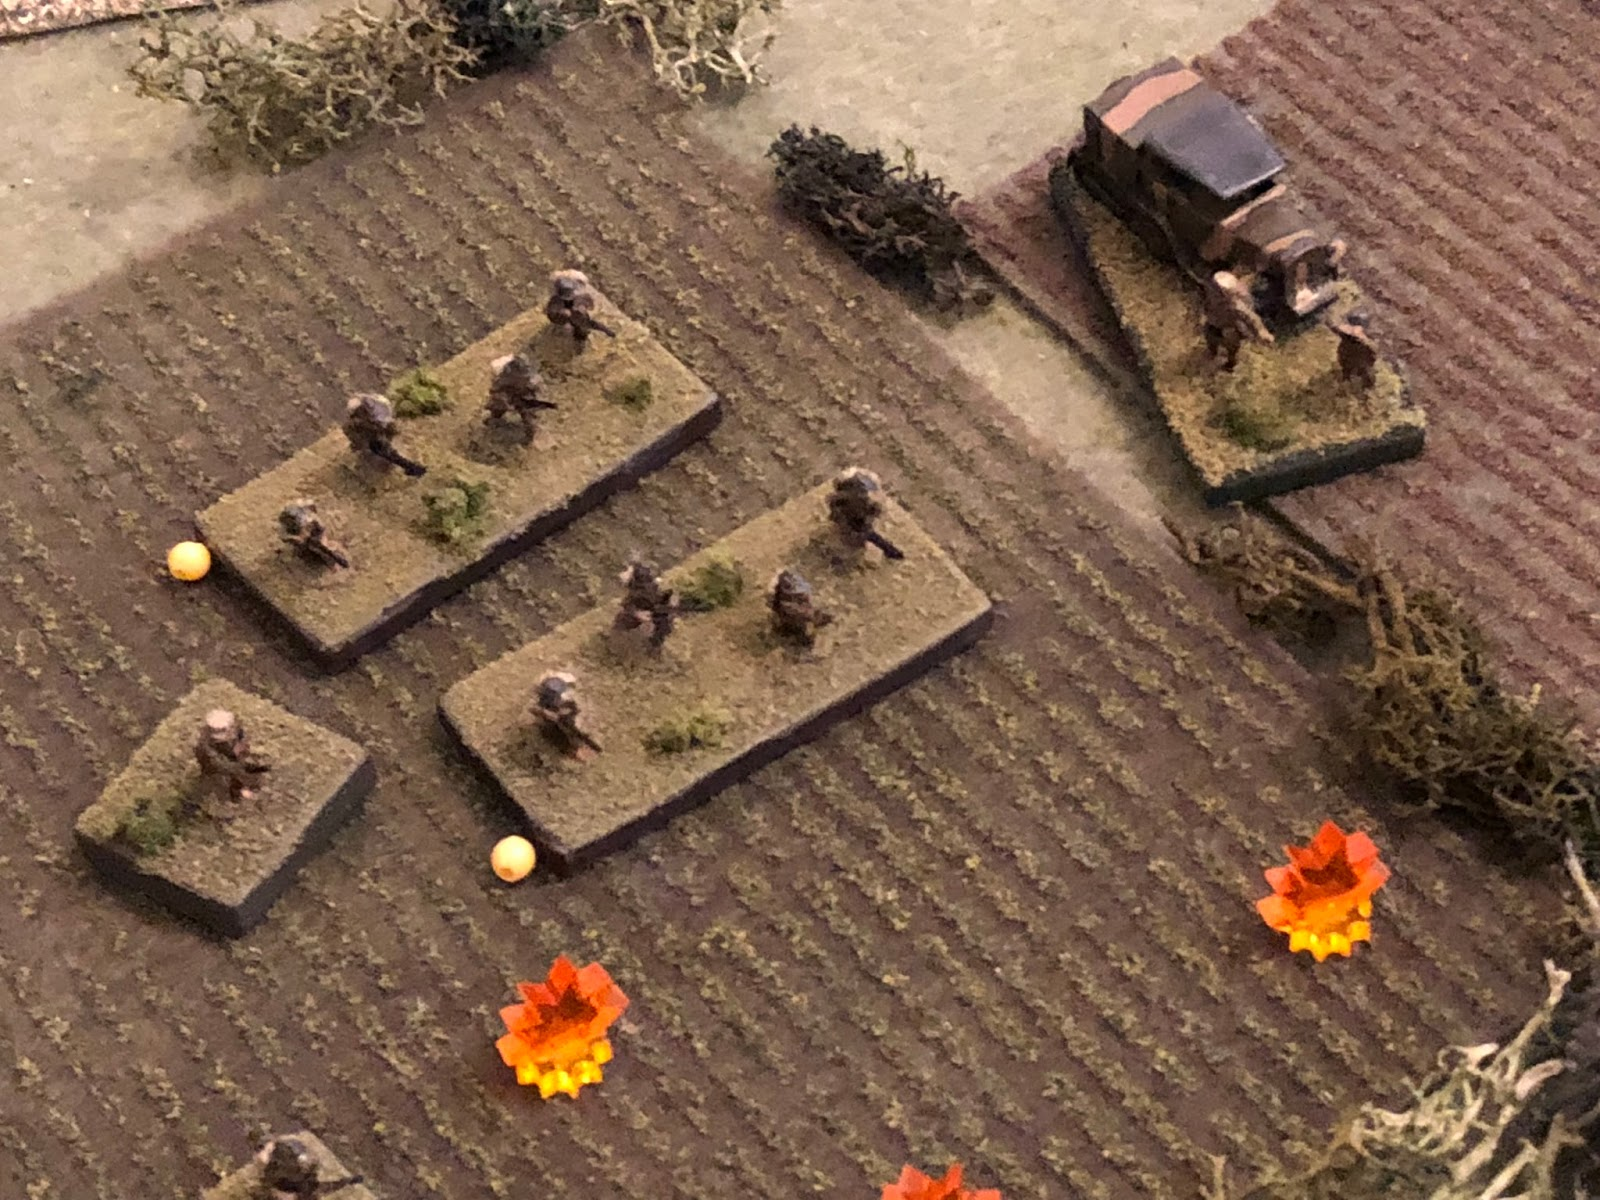 In the south, the French platoon leader continues trying to rally h is 1st Platoon back into the fight...